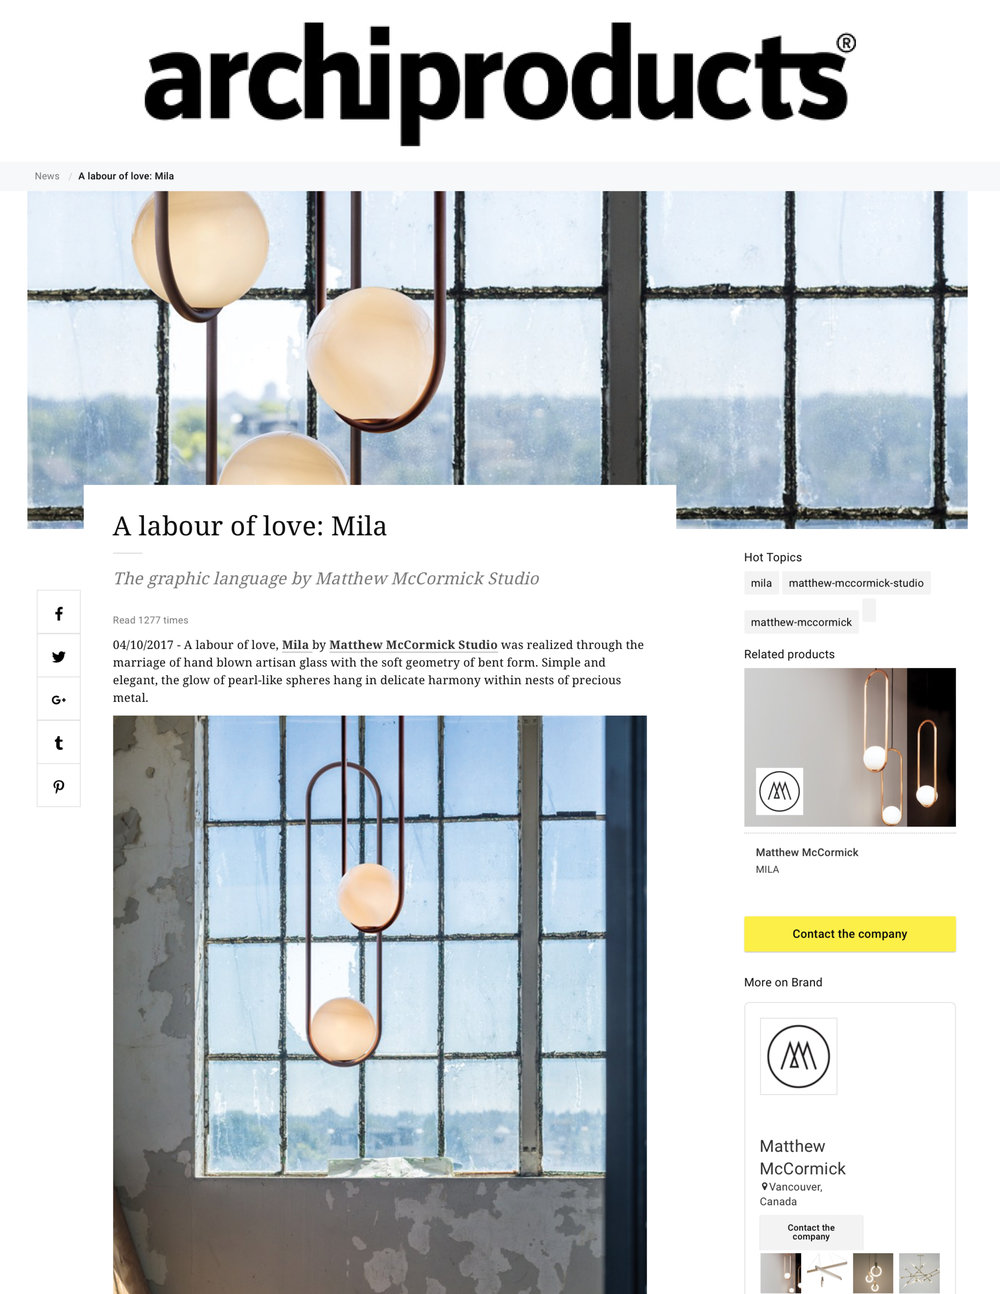 Archiproducts October 10th, 2017